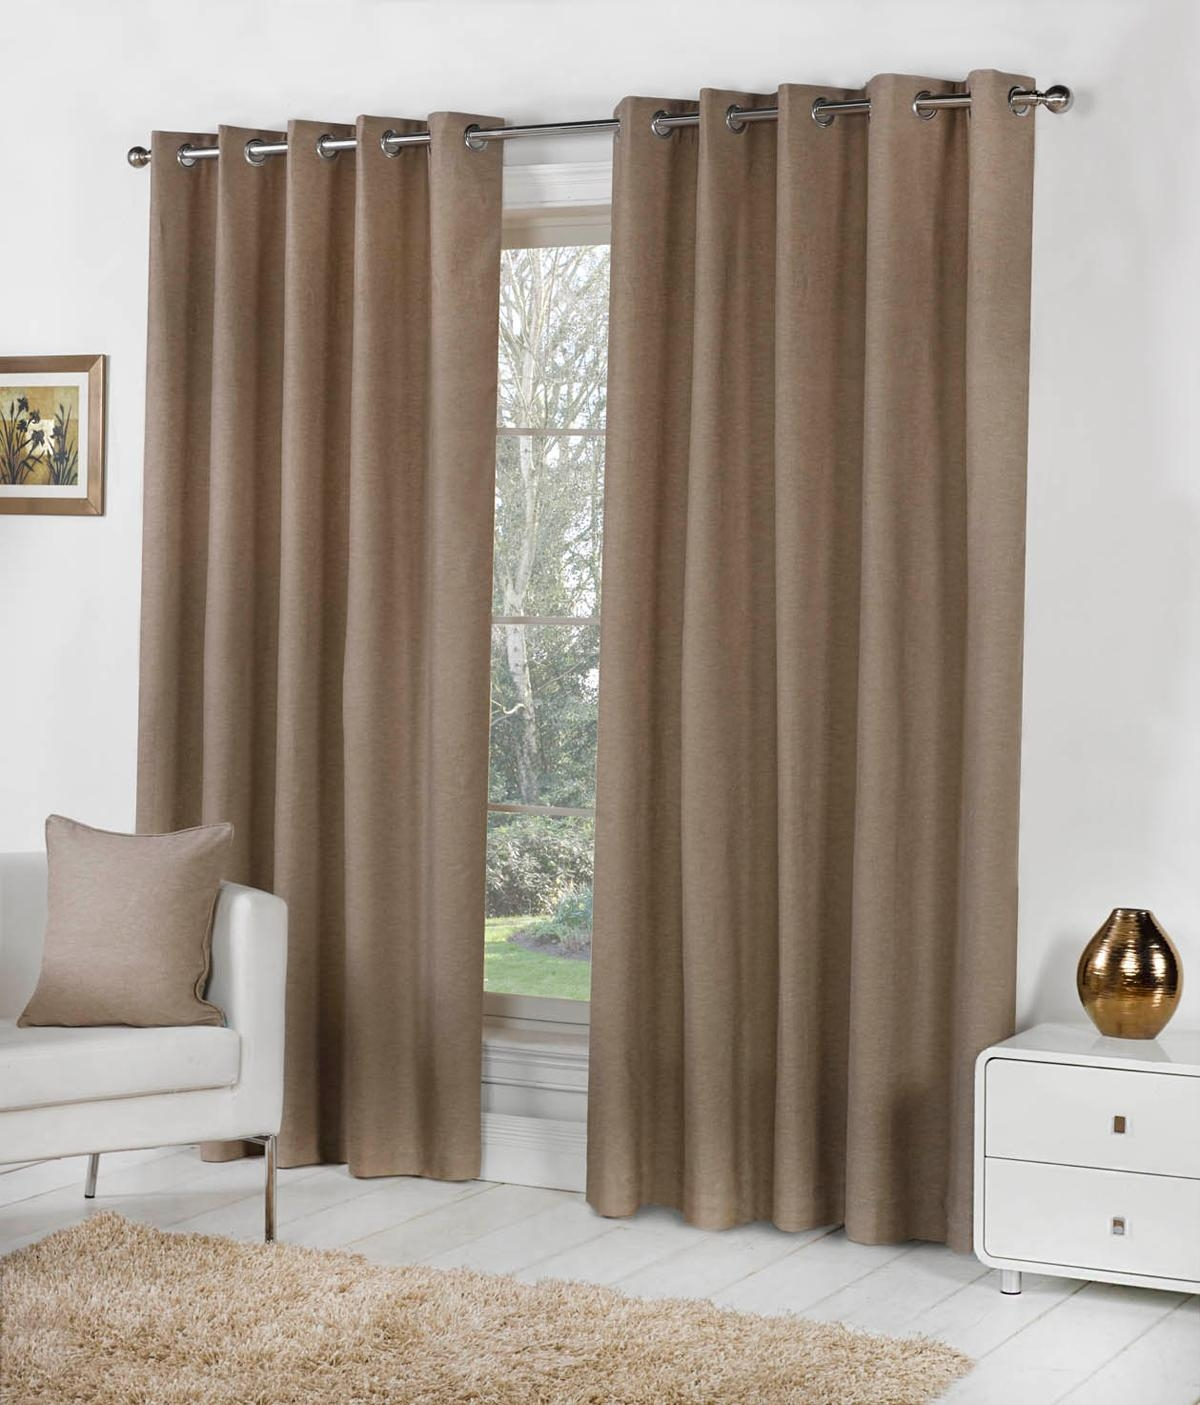 Sorbonne Eyelet Curtains In Taupe Free Uk Delivery Terrys Fabrics Throughout Brown Eyelet Curtains (Image 22 of 25)